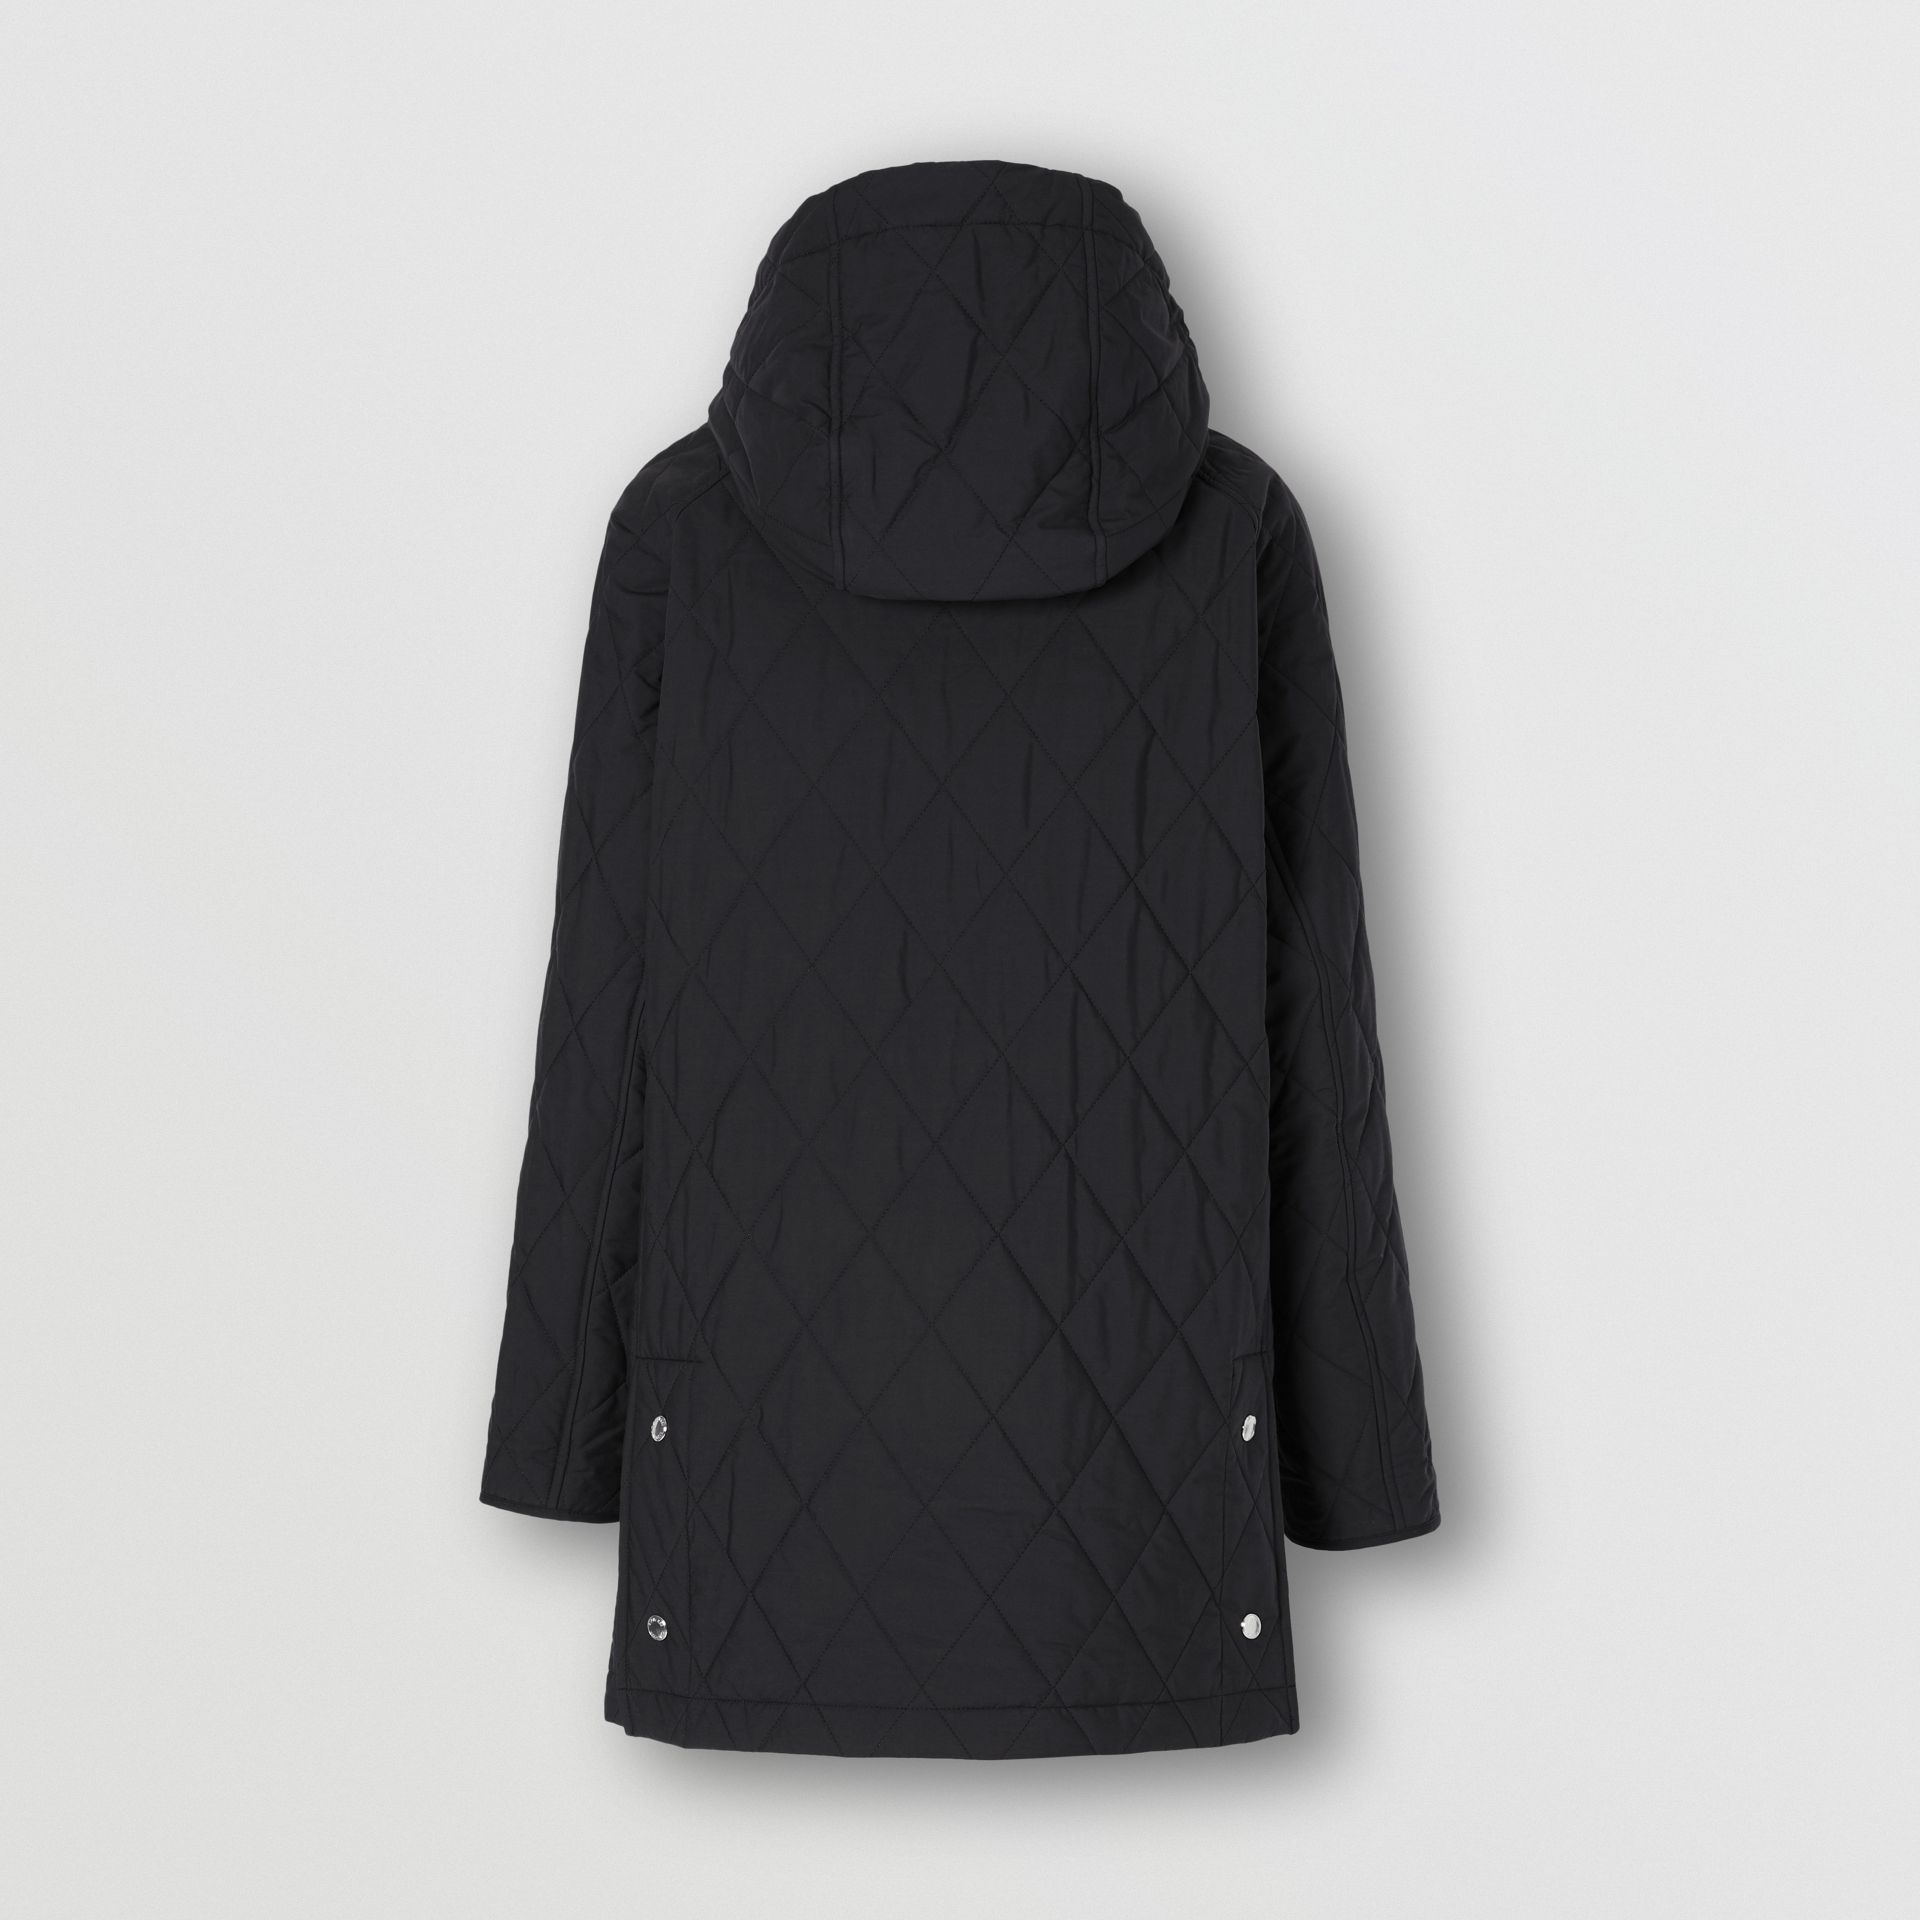 Diamond Quilted Cotton Hooded Coat in Black - Women | Burberry Hong Kong S.A.R - gallery image 6